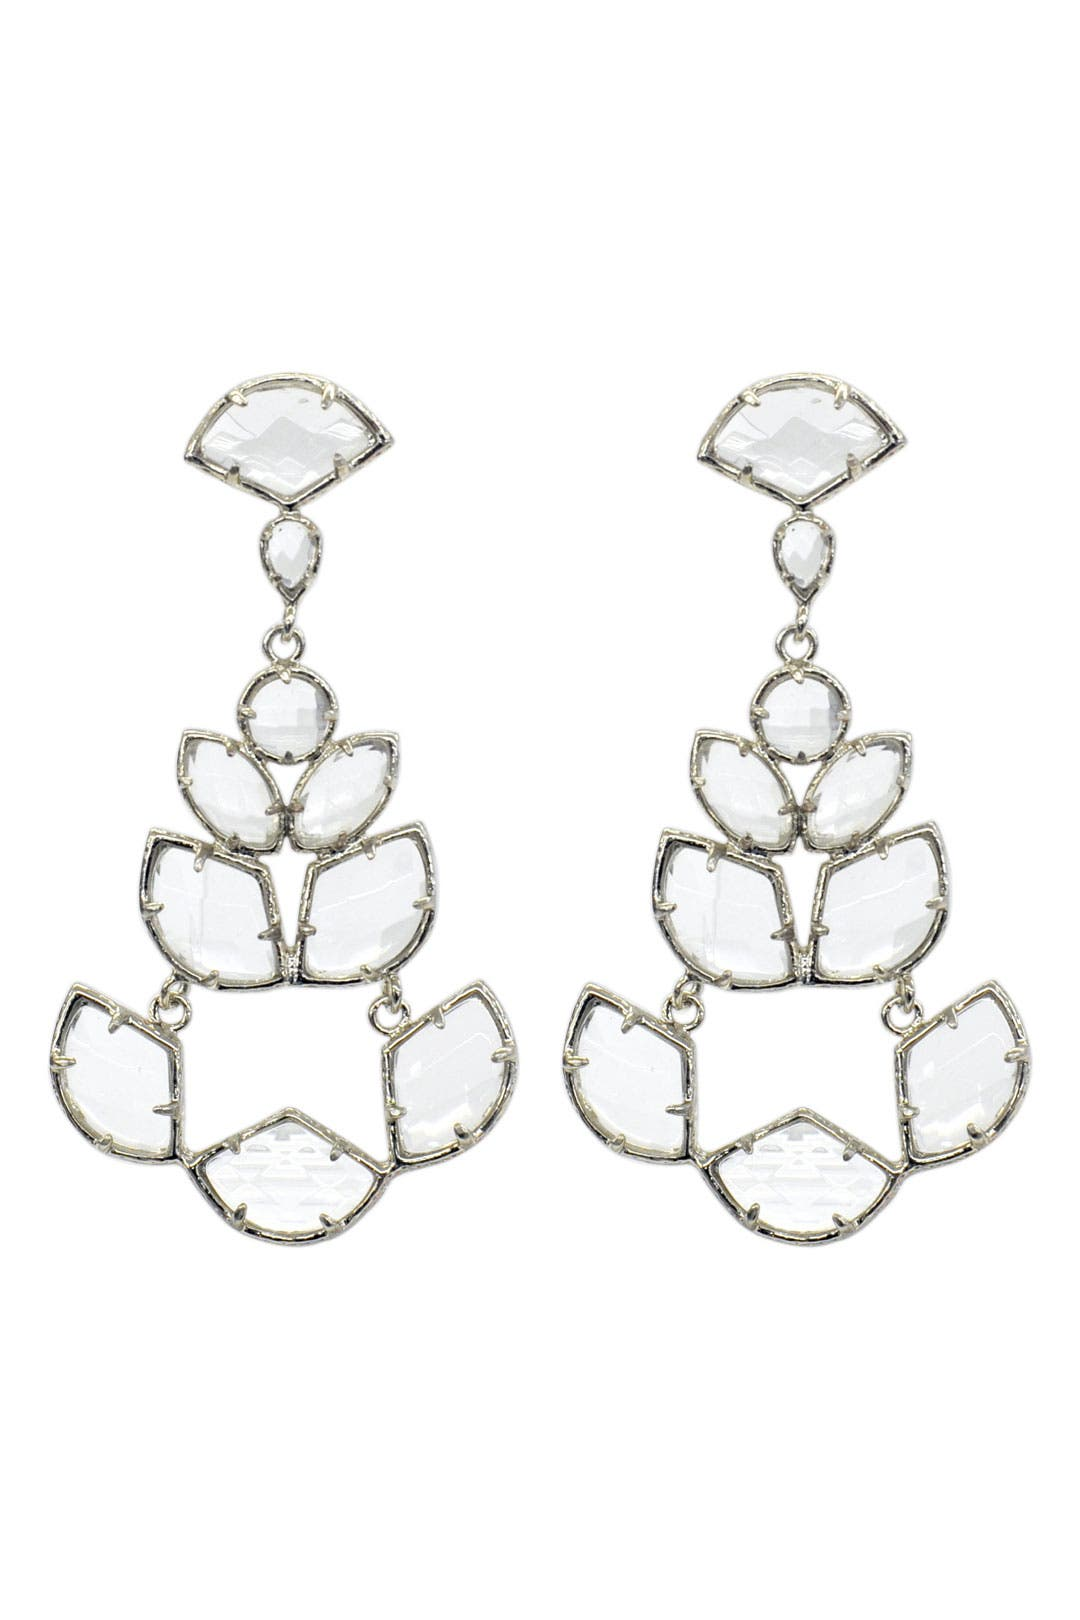 Morning Glory Earrings by Kendra Scott